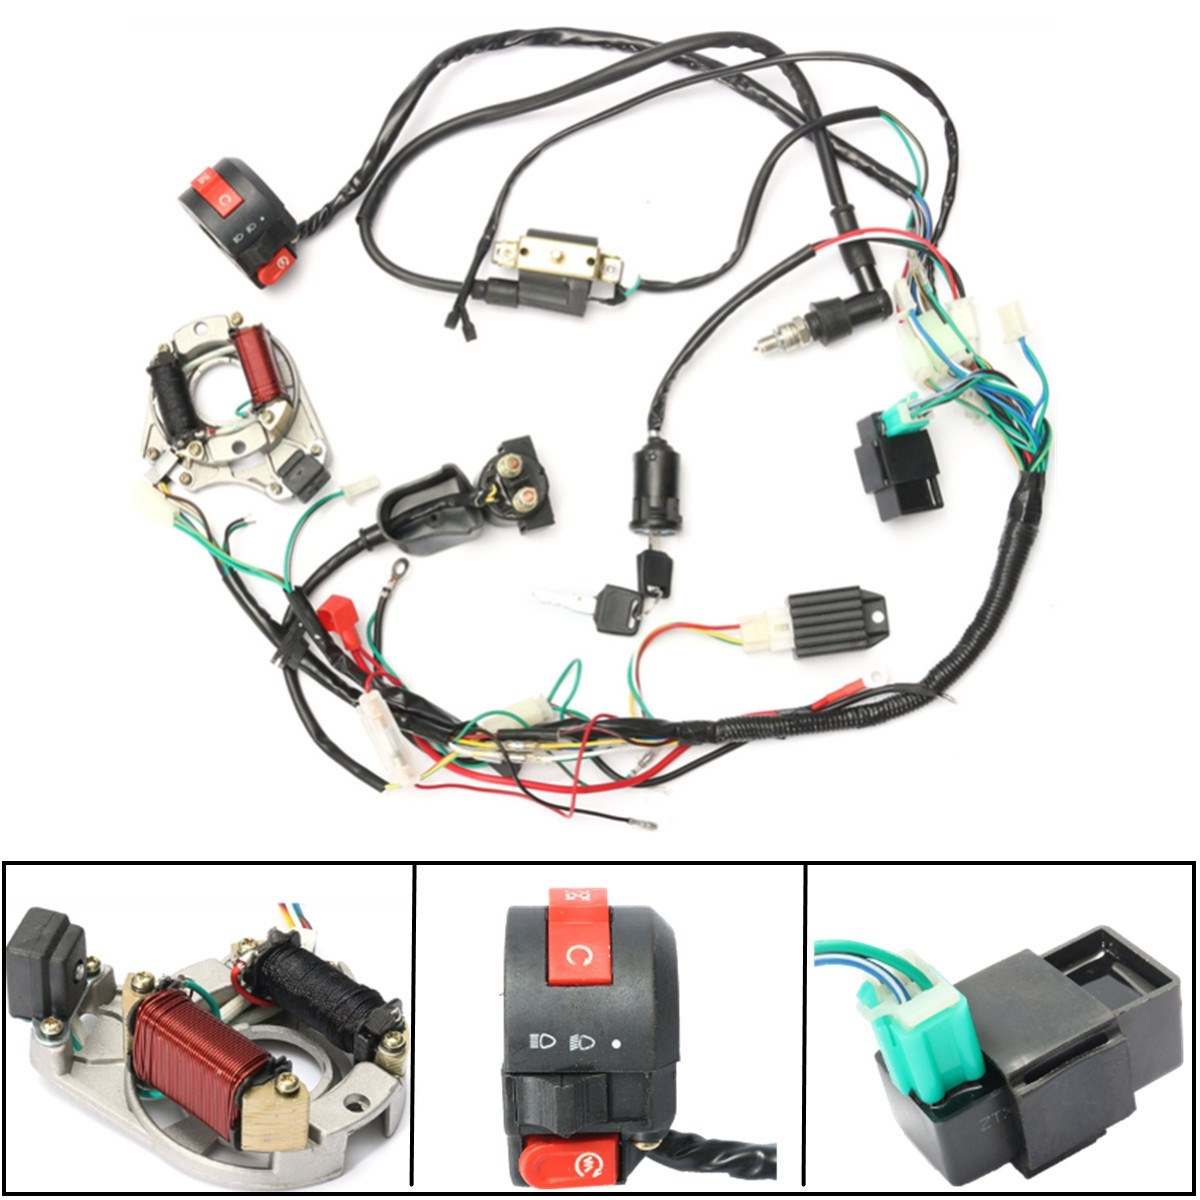 50 70 90 110CC CDI Wire Harness Assembly Wiring Kit Set for ATV Electric  Start Quad-in Motorcycle Starter from Automobiles & Motorcycles on  Aliexpress.com ...